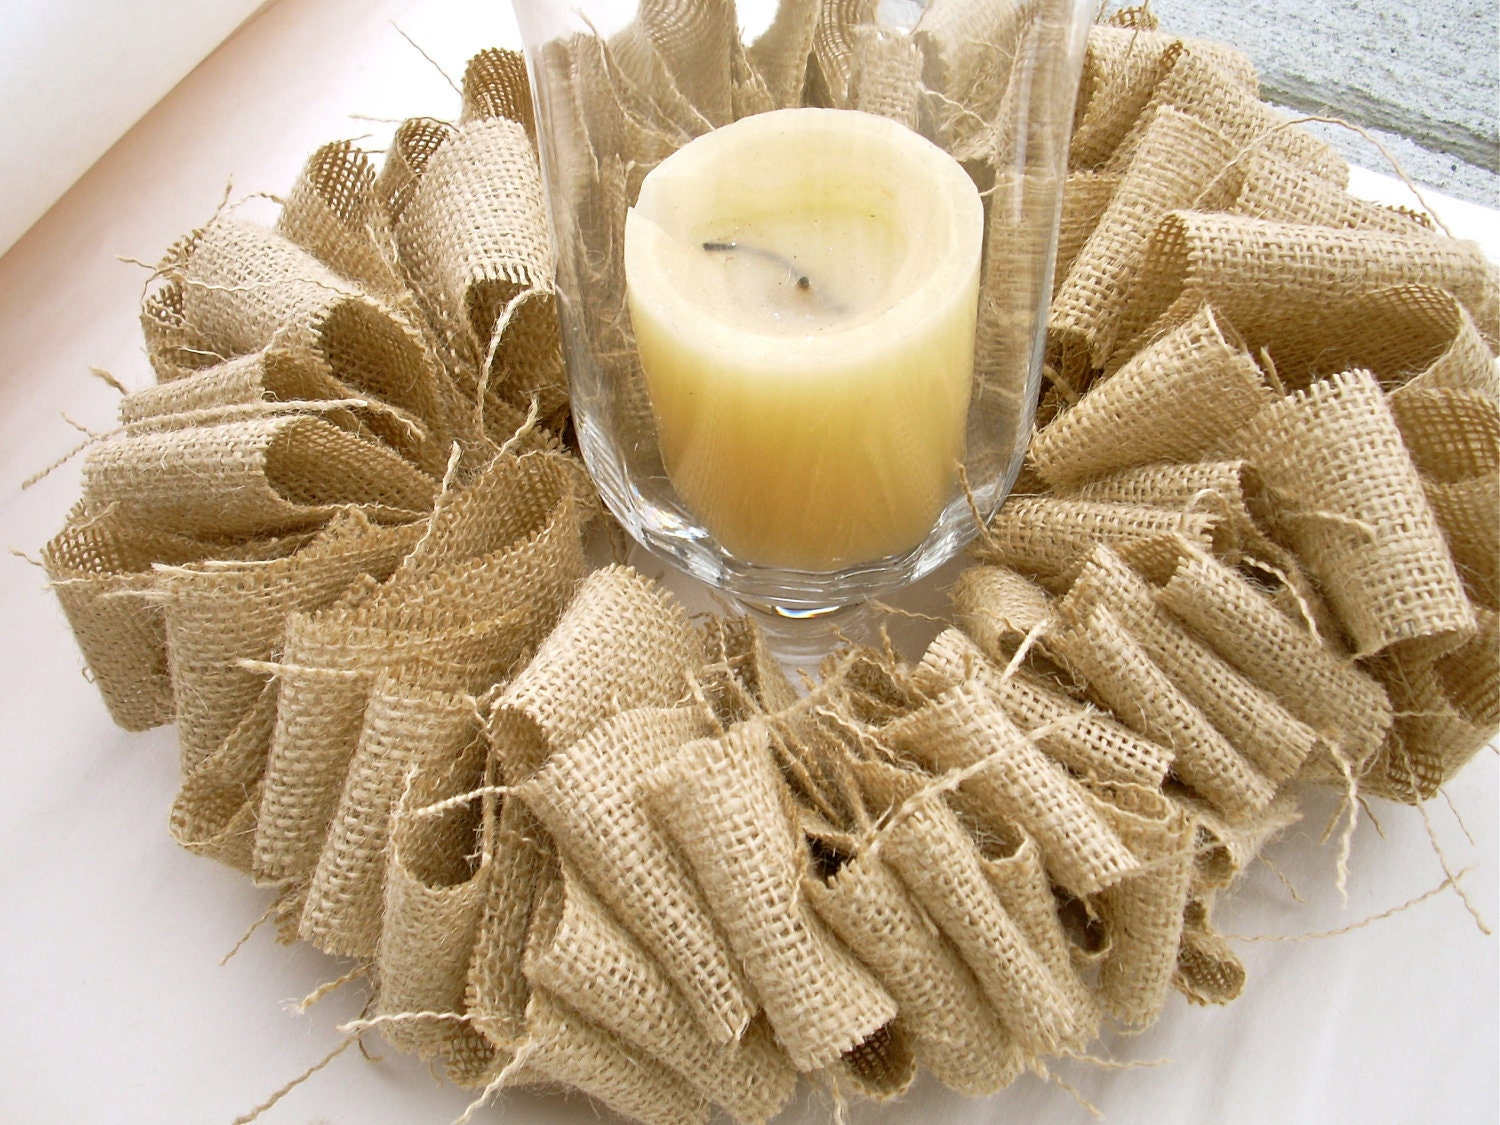 Rustic Burlap Centerpiece Candle Wreath By Seekimothy On Etsy